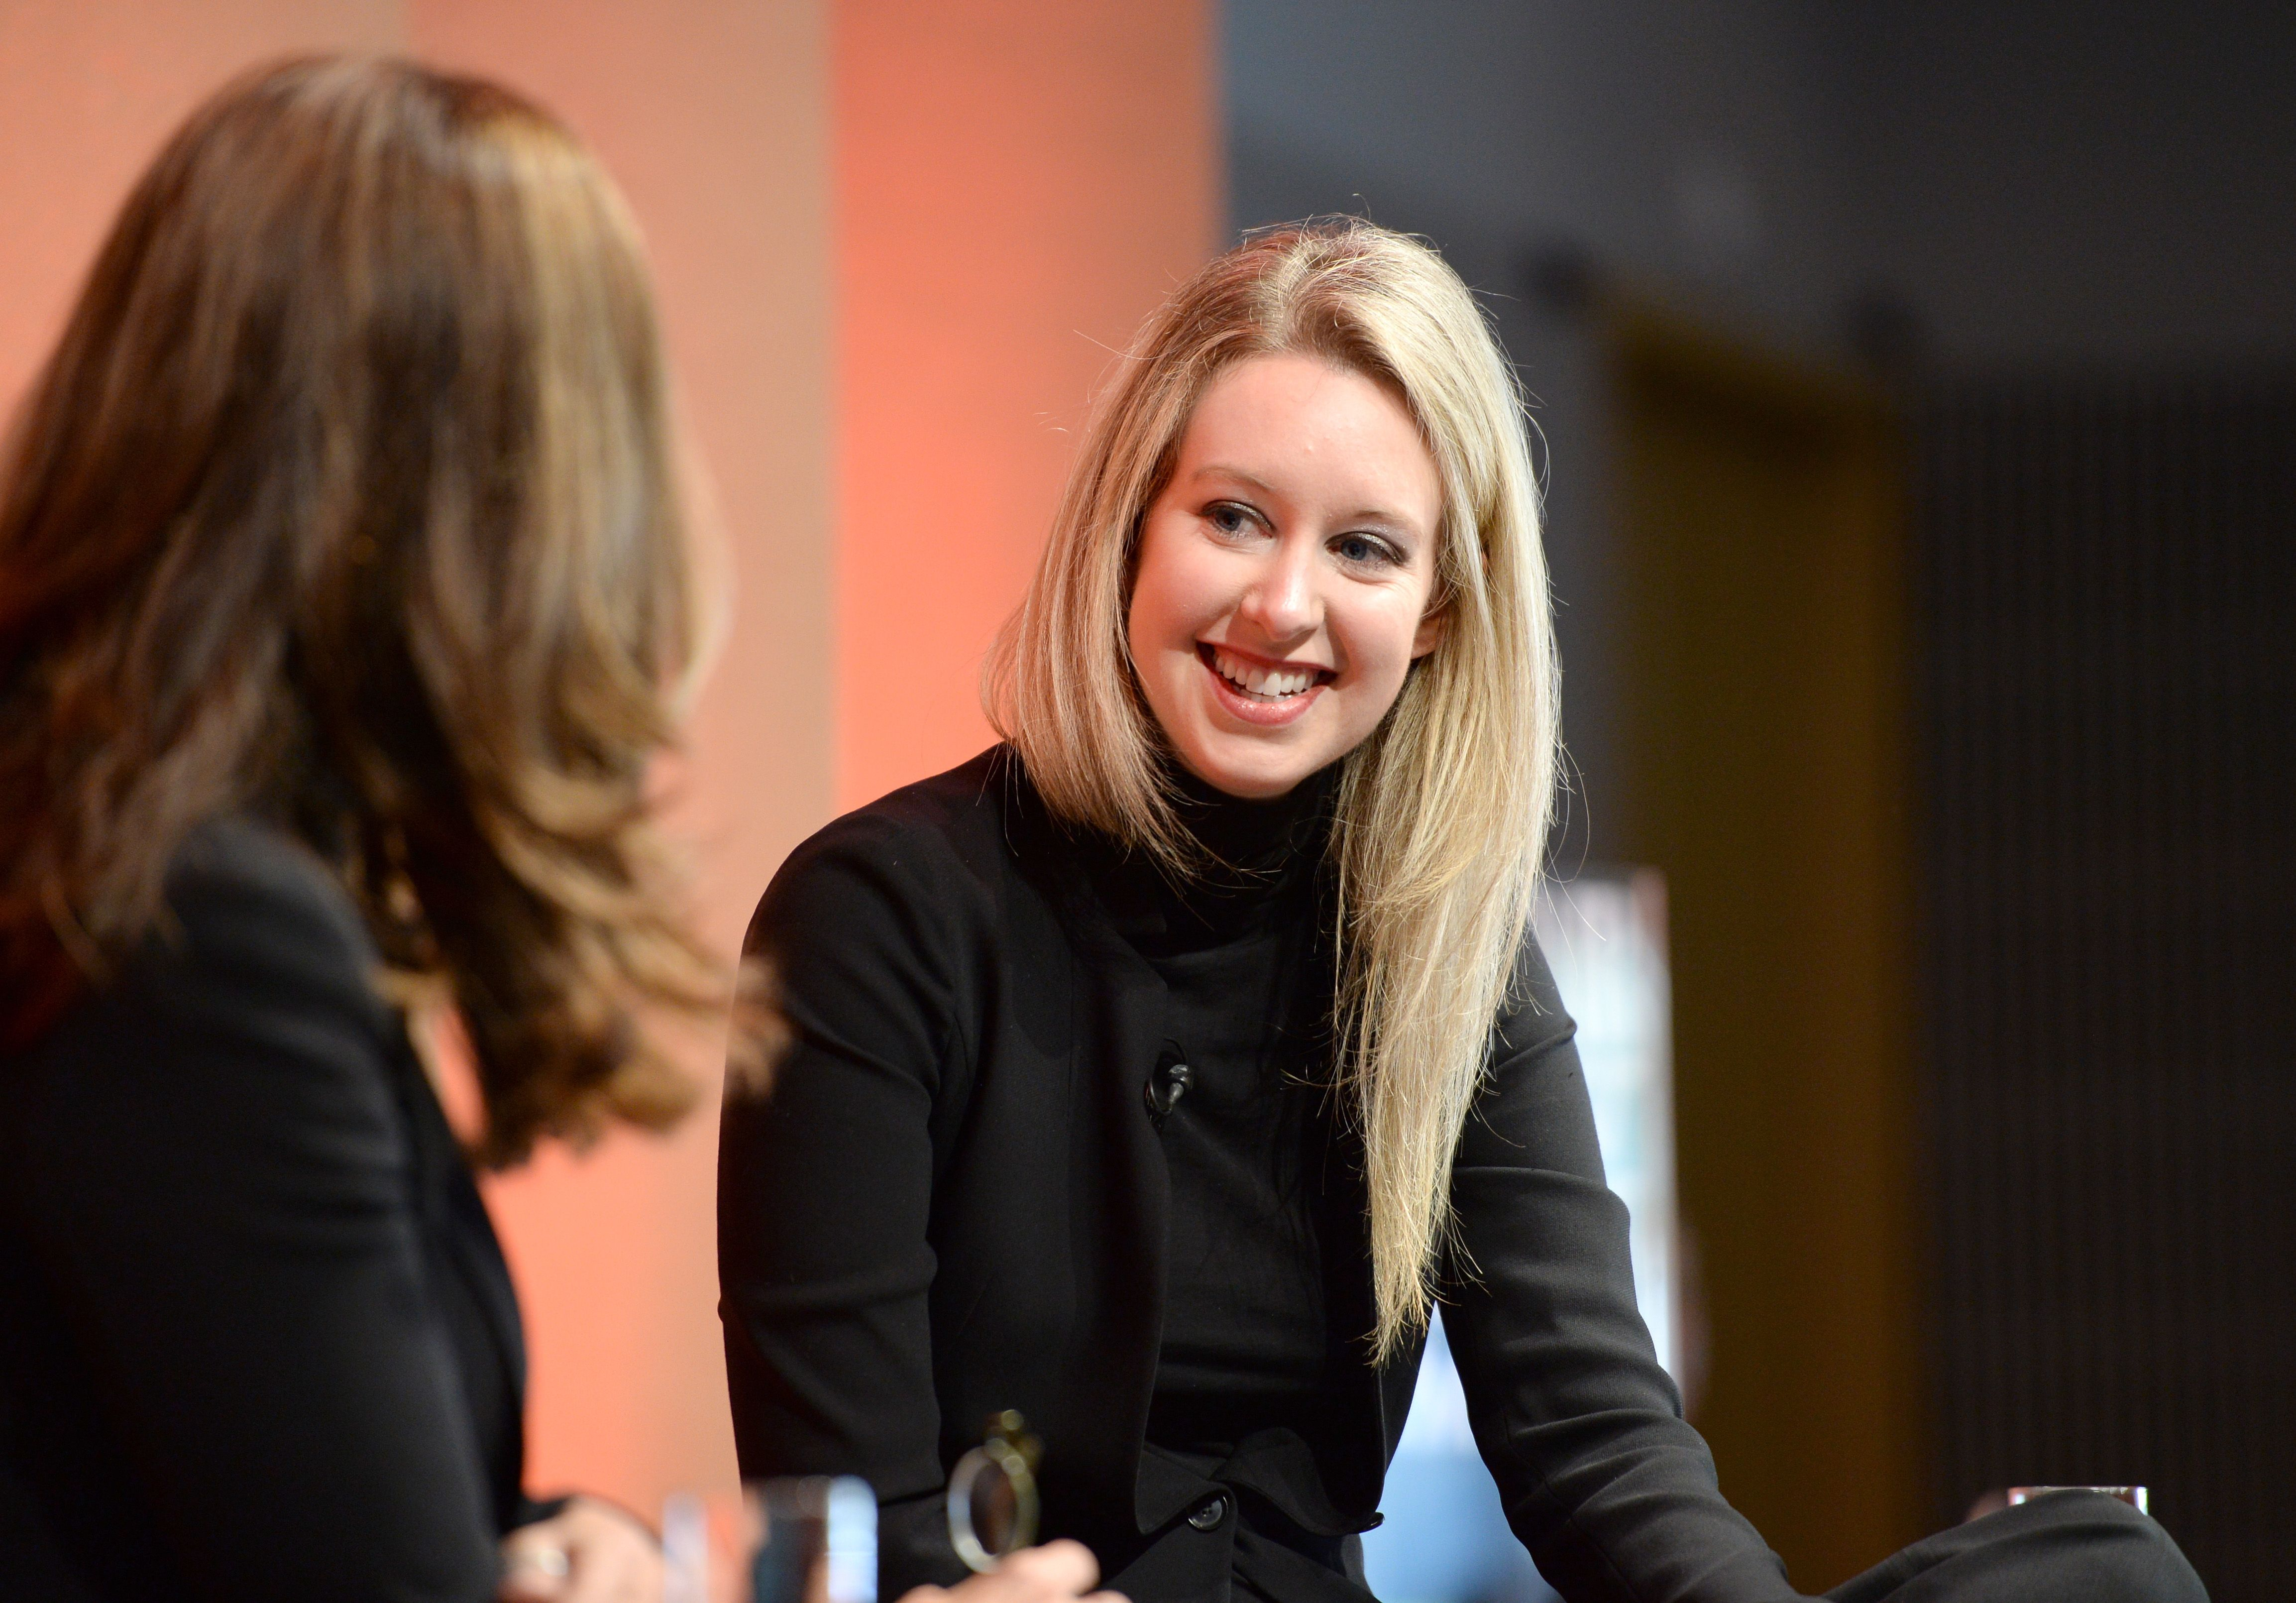 Why the Black Turtleneck Was So Important to Elizabeth Holmes's Image